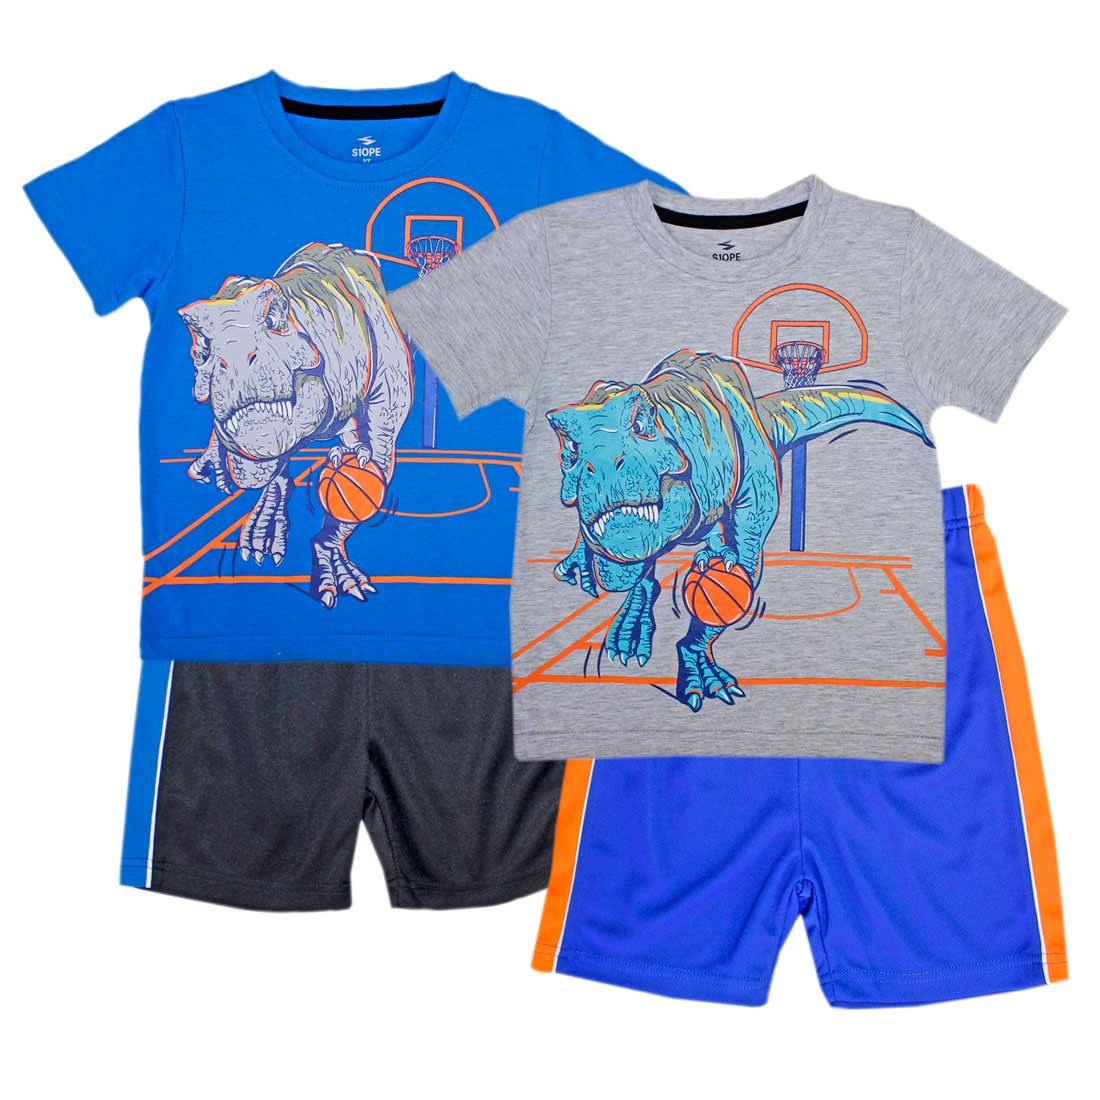 S1OPE T-Rex Jersey Top with Taping Athletic Shorts-1370702